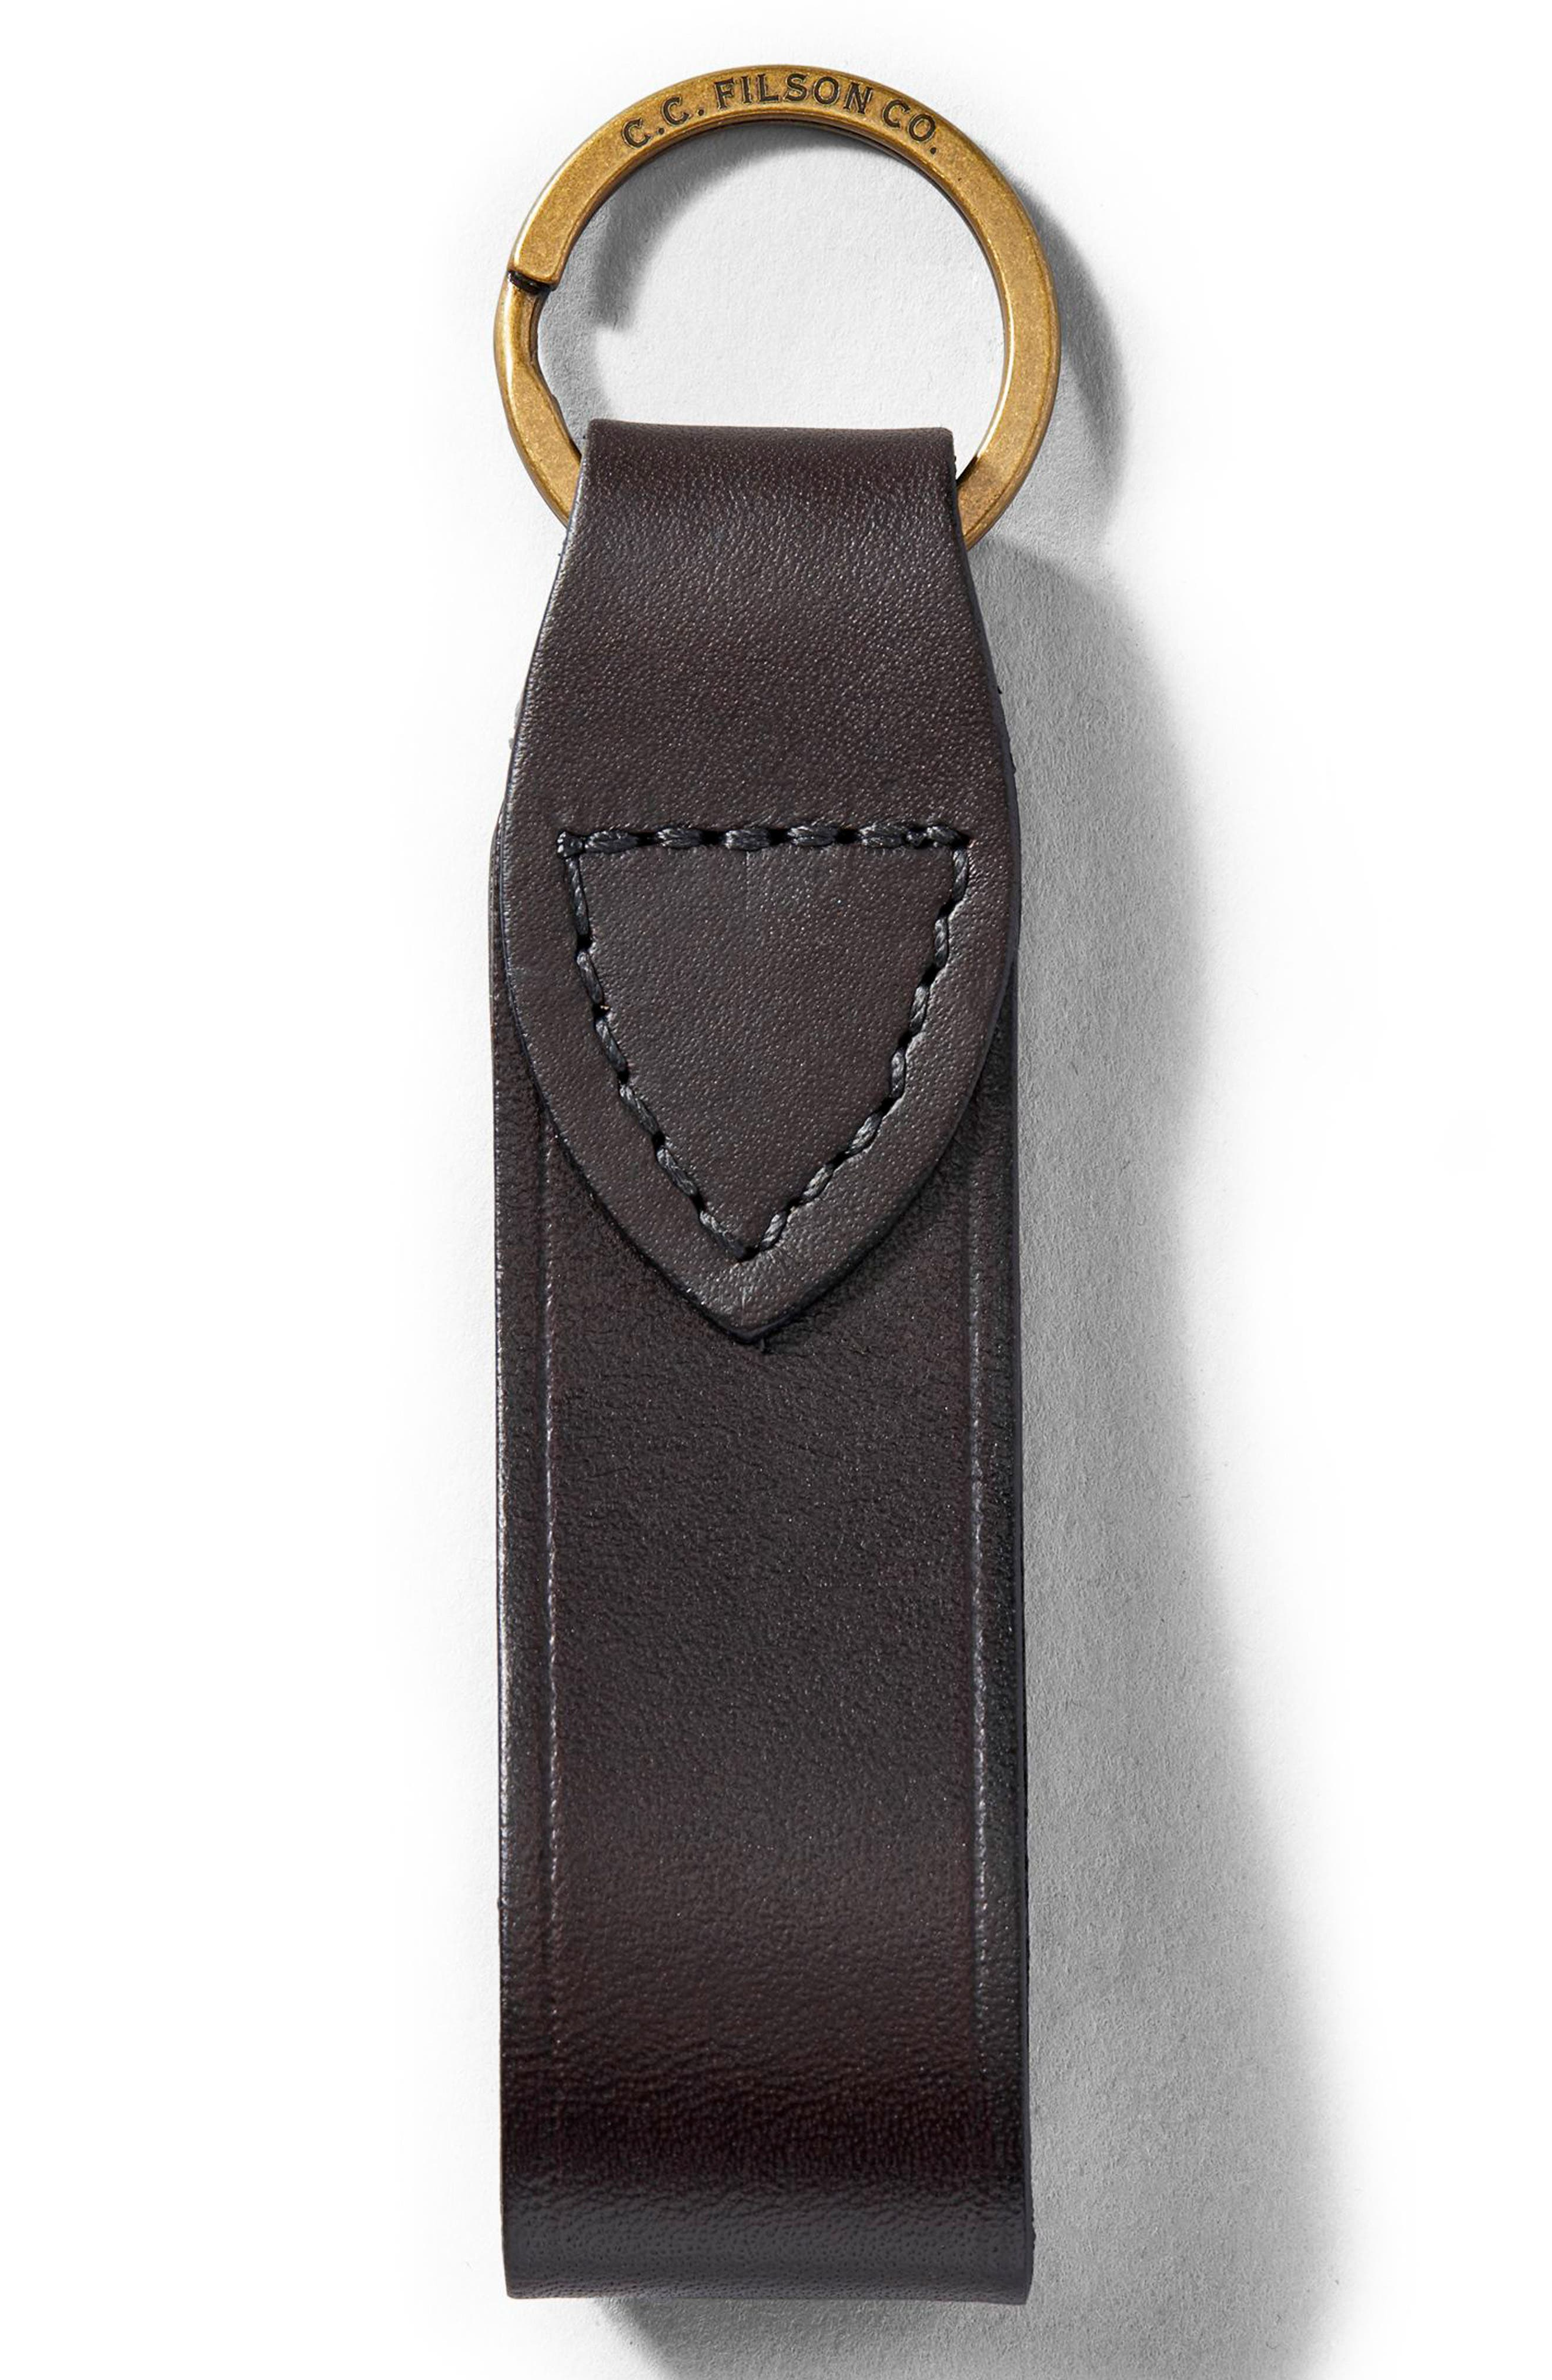 Filson Leather Key Chain